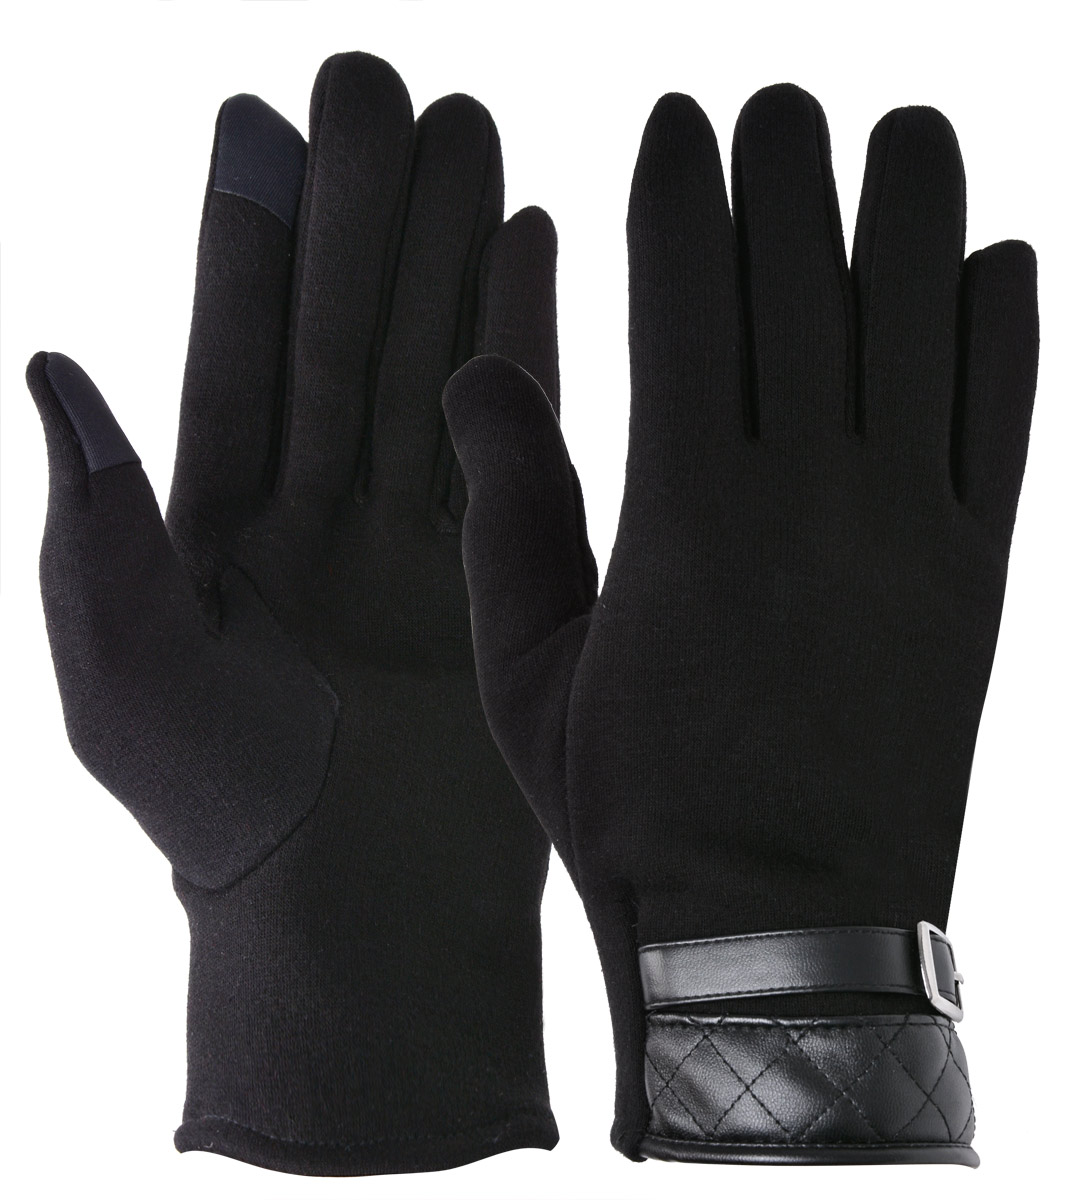 Mens Winter Gloves, Coxeer Outdoor Work Motorcycle Glove Touchscreen Gloves for Smart Phone